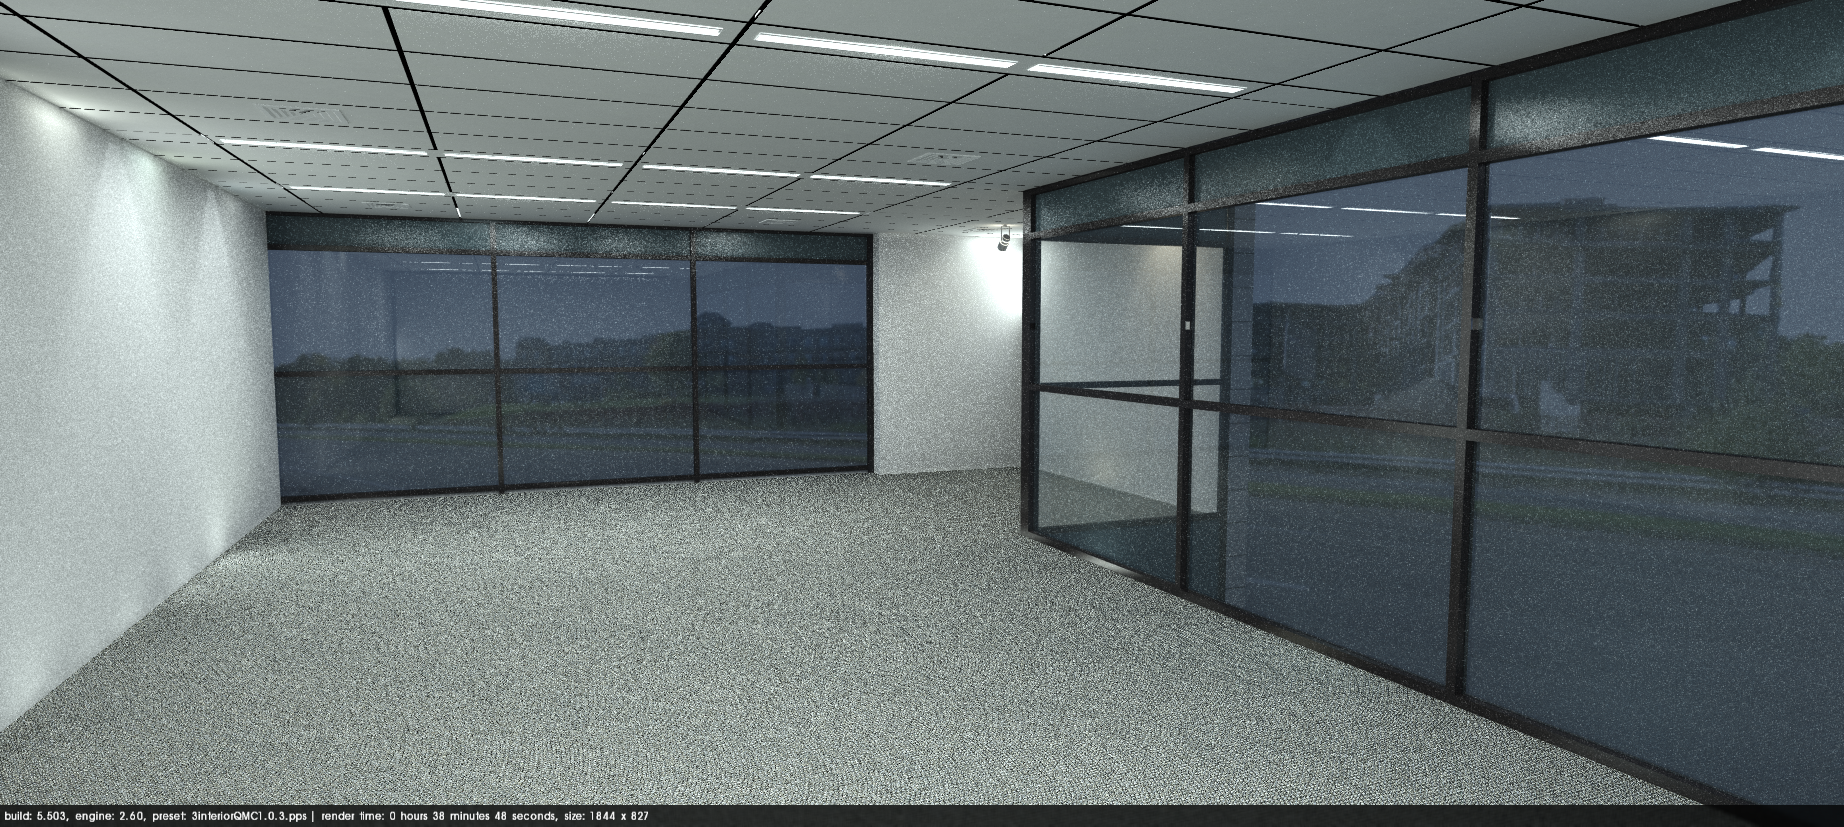 Interieur-office-v6-no-exterior-orglights-empty 2018-10-31 17003900000.png